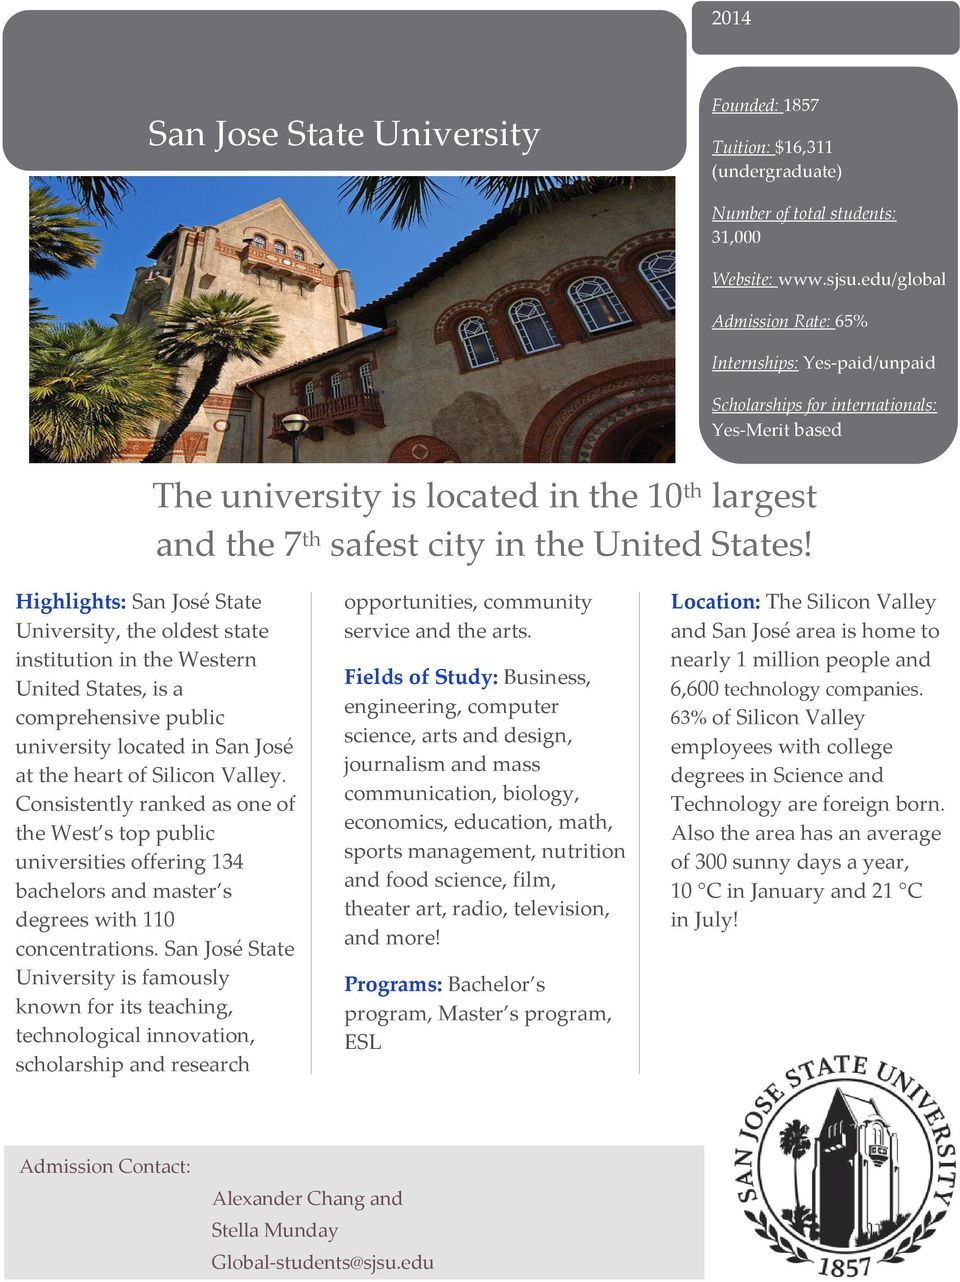 Highlights: San José State University, the oldest state institution in the Western United States, is a comprehensive public university located in San José at the heart of Silicon Valley.